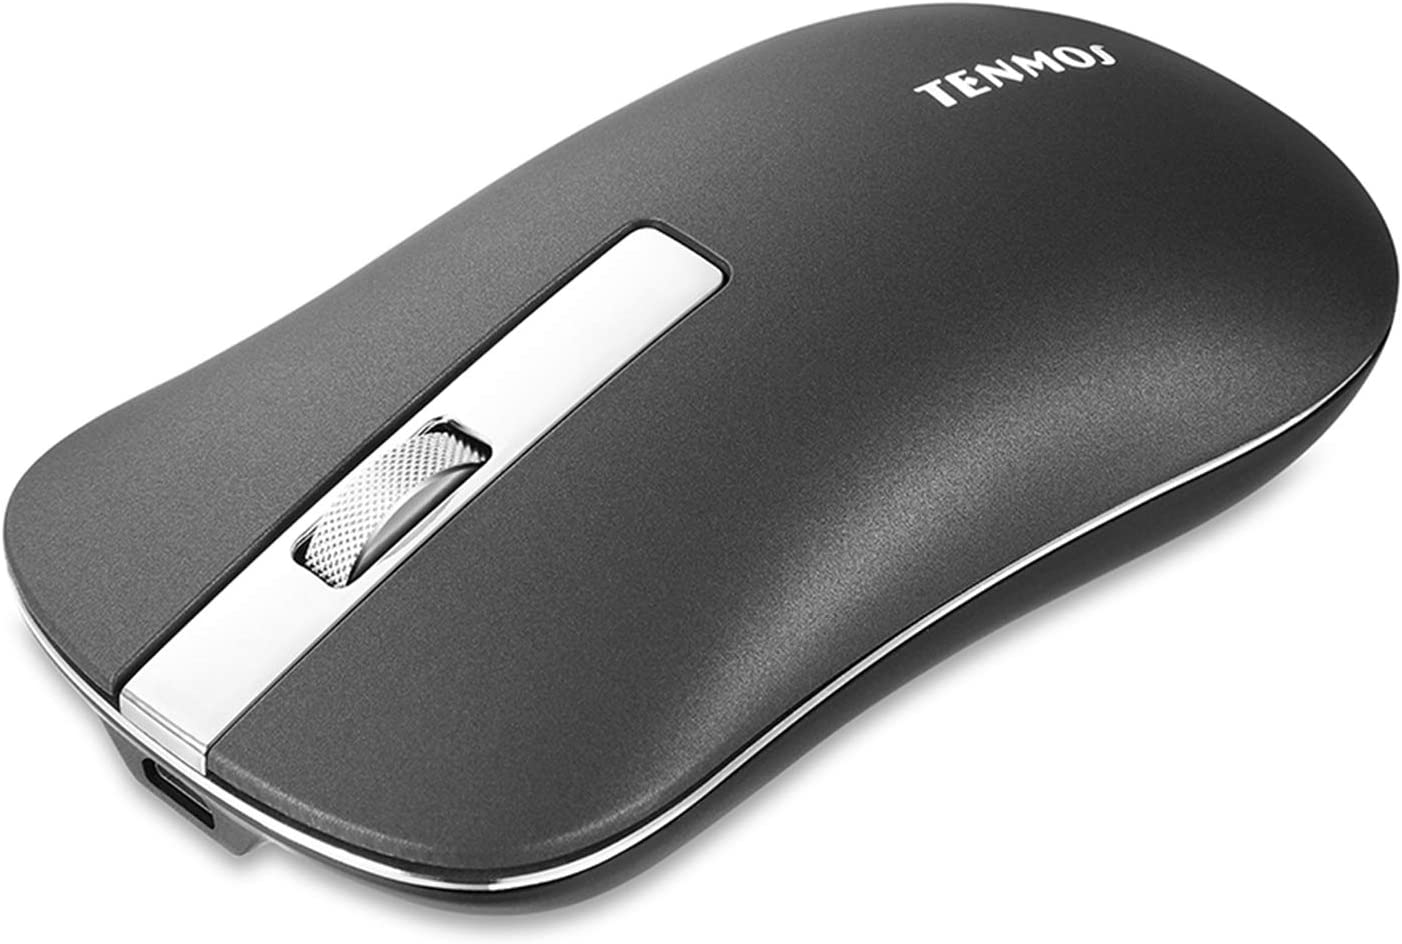 TENMOS T5 Slim Wireless Mouse, 2.4G Silent Travel Mouse with USB Receiver Type-C Adapter, Rechargeable Wireless Computer Mice for Laptop/Chromebook/Mac (Dark Grey)